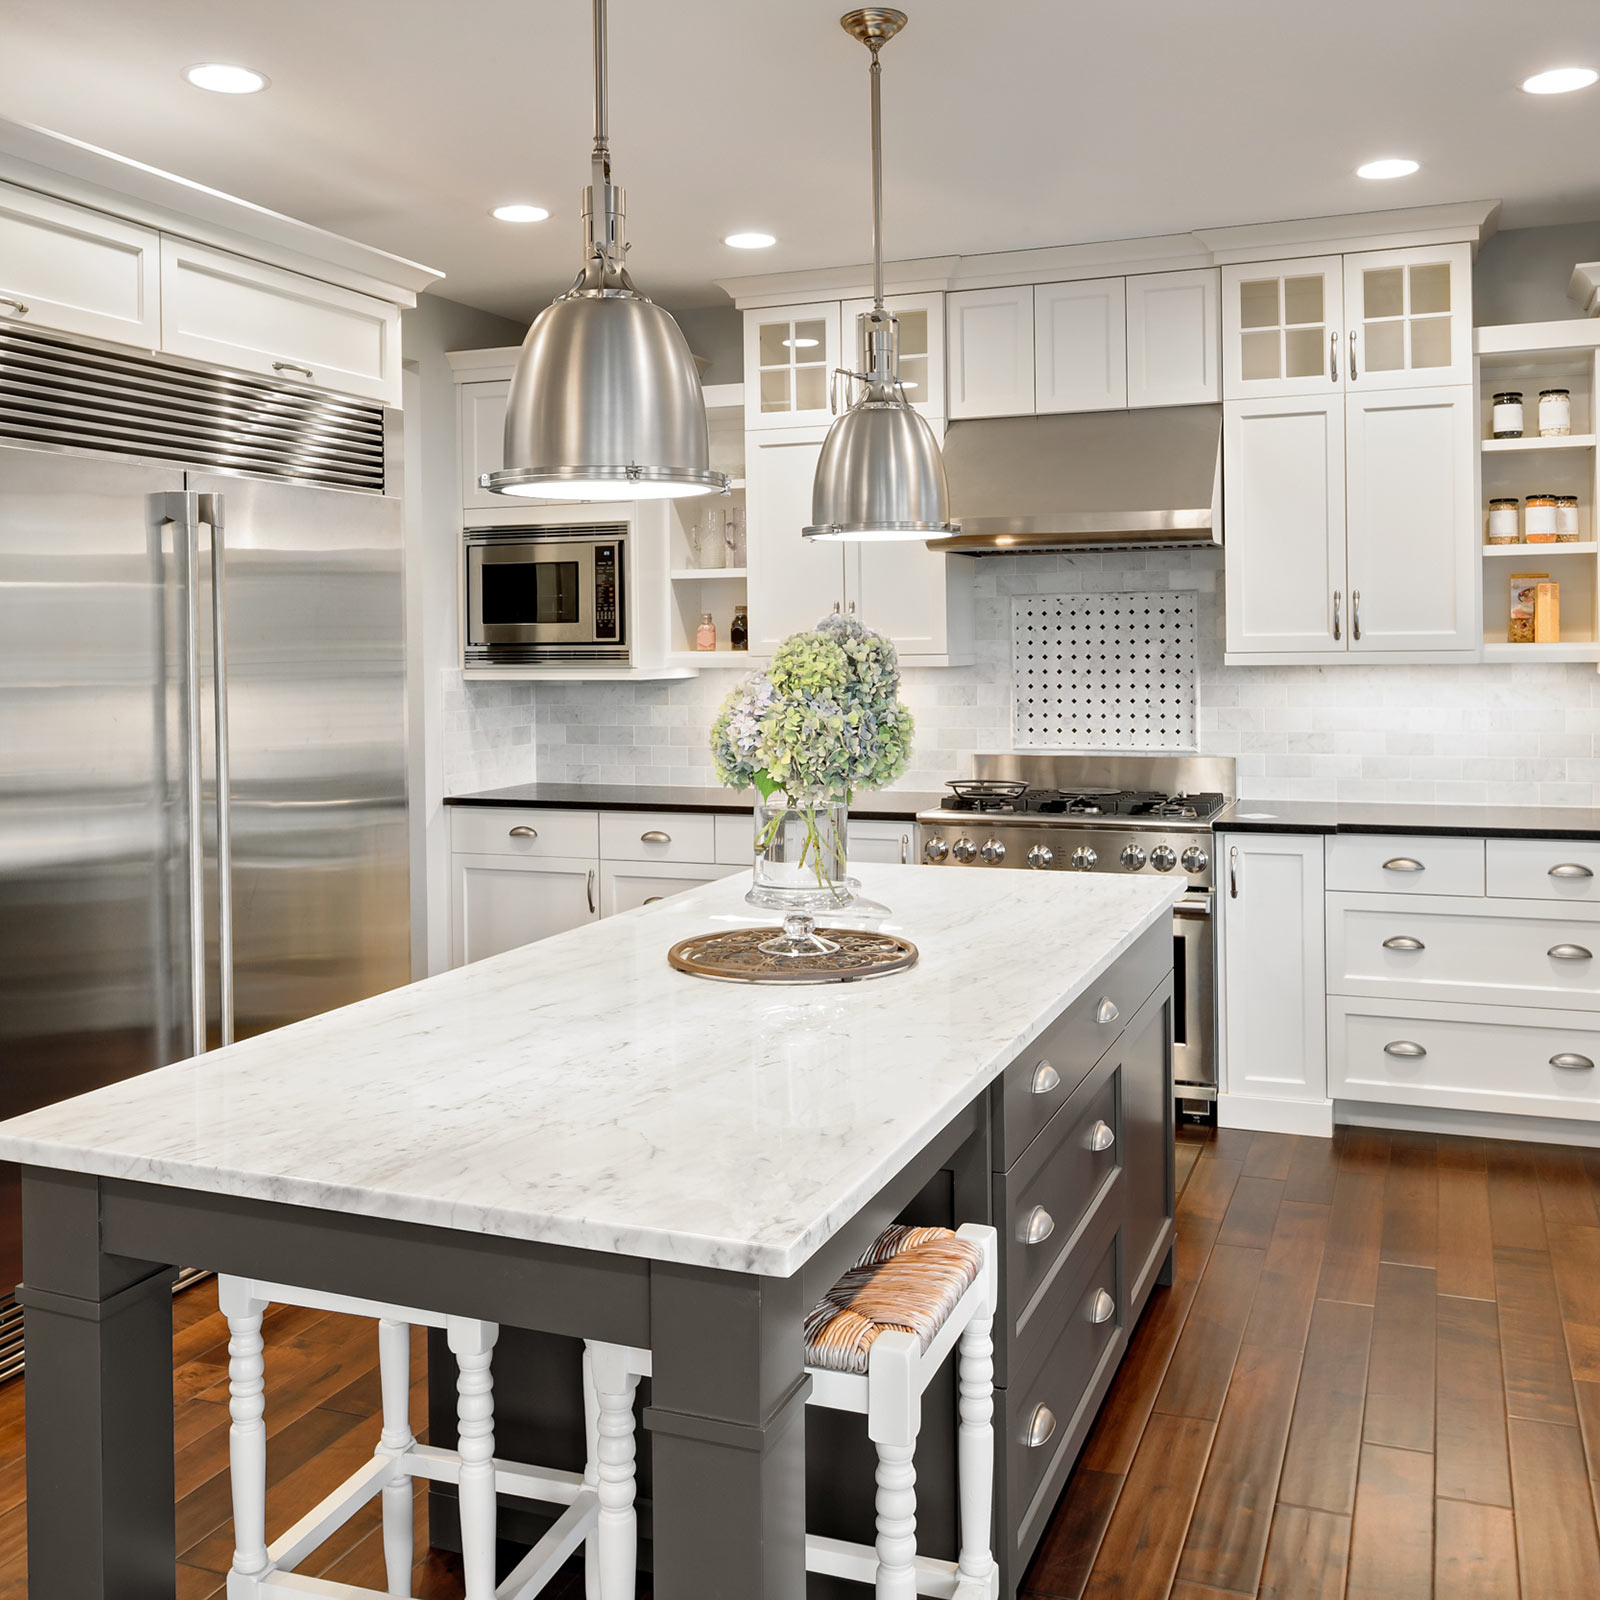 Choosing backsplash for kitchen | Elite Flooring and Interiors Inc